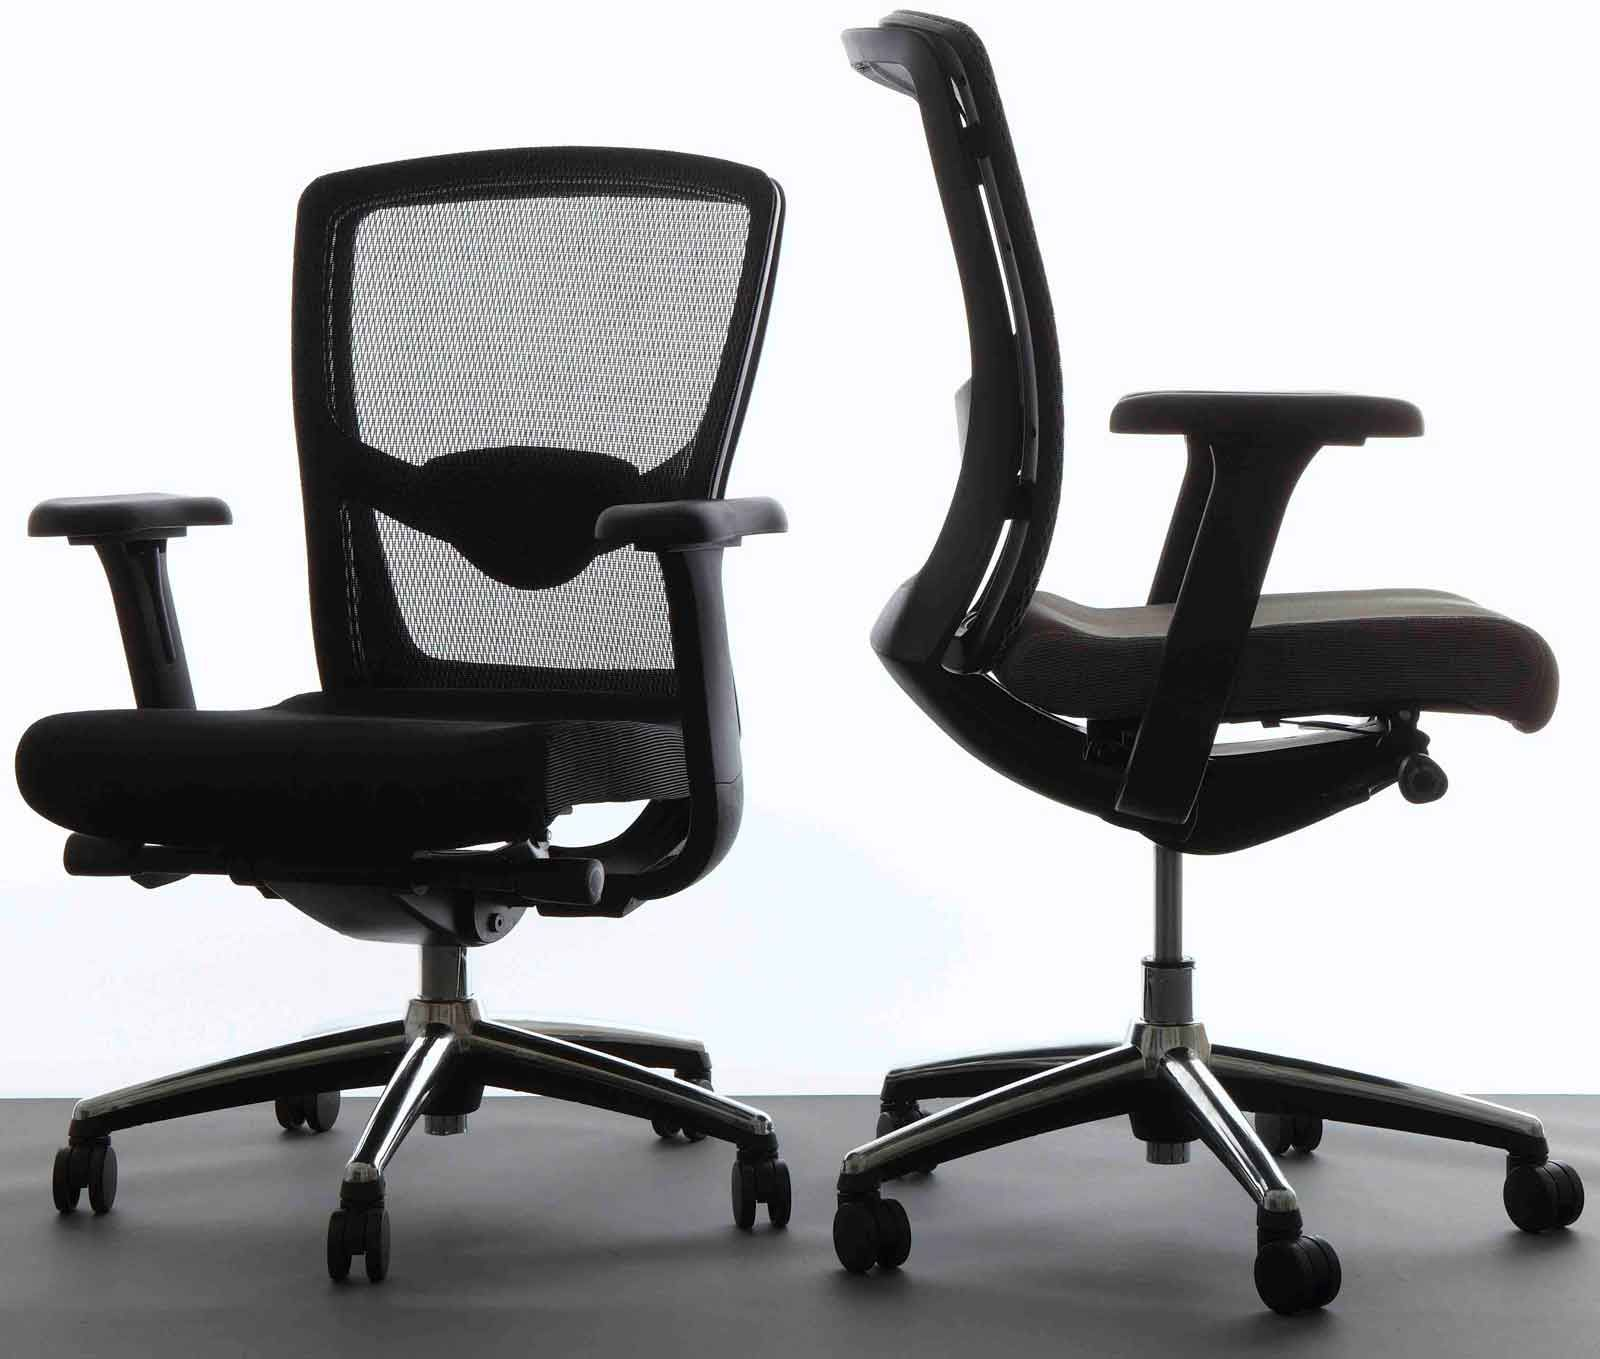 ergonomic mesh office desk chair with adjustable arms. explore comfortable office chair and more! marvelous ergonomic desk mesh with adjustable arms o